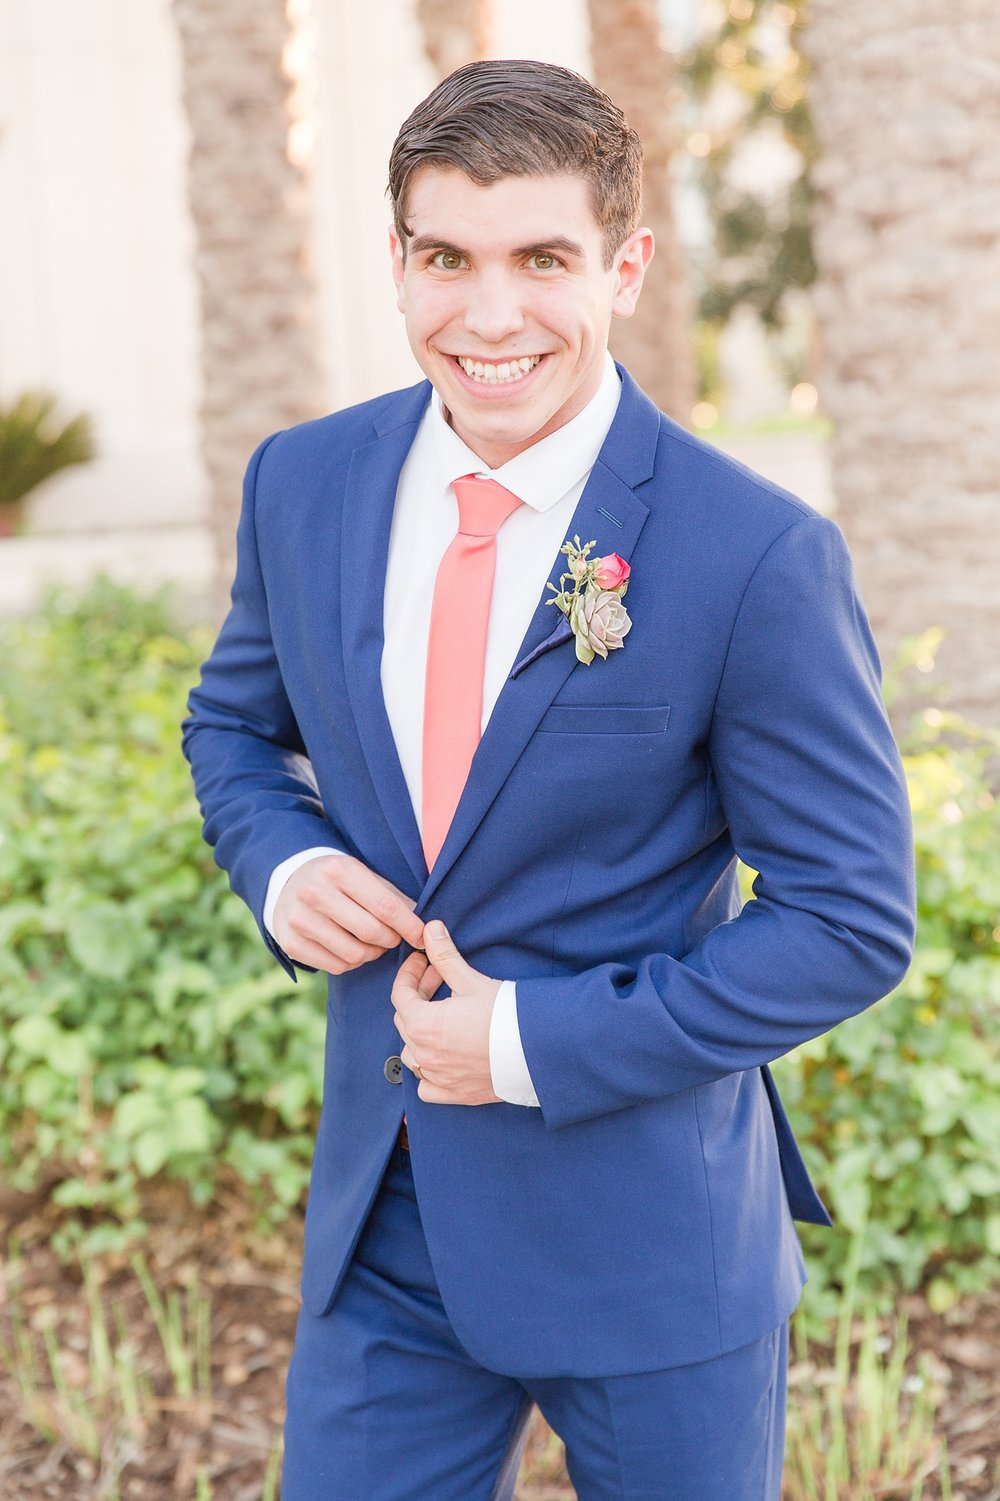 Groom in a blue suit and a pink tie smiling at the camera